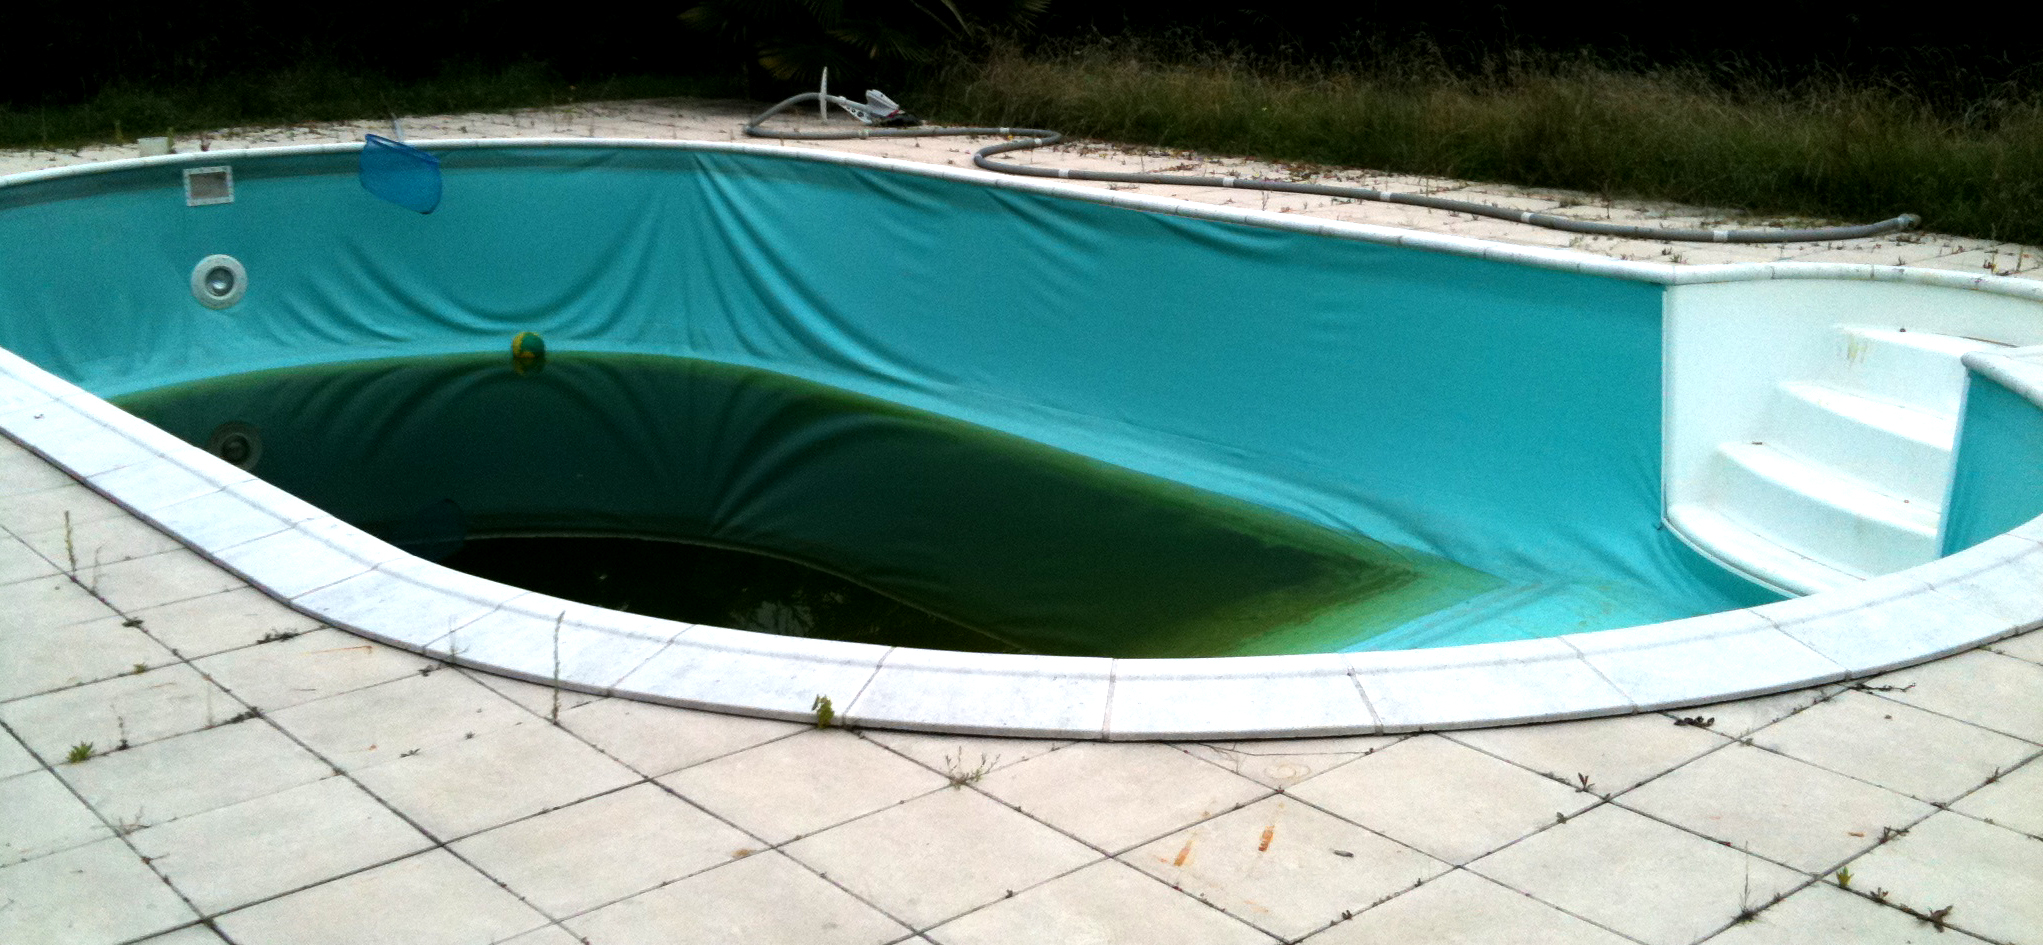 R novation d une piscine waterair Devis changement liner piscine